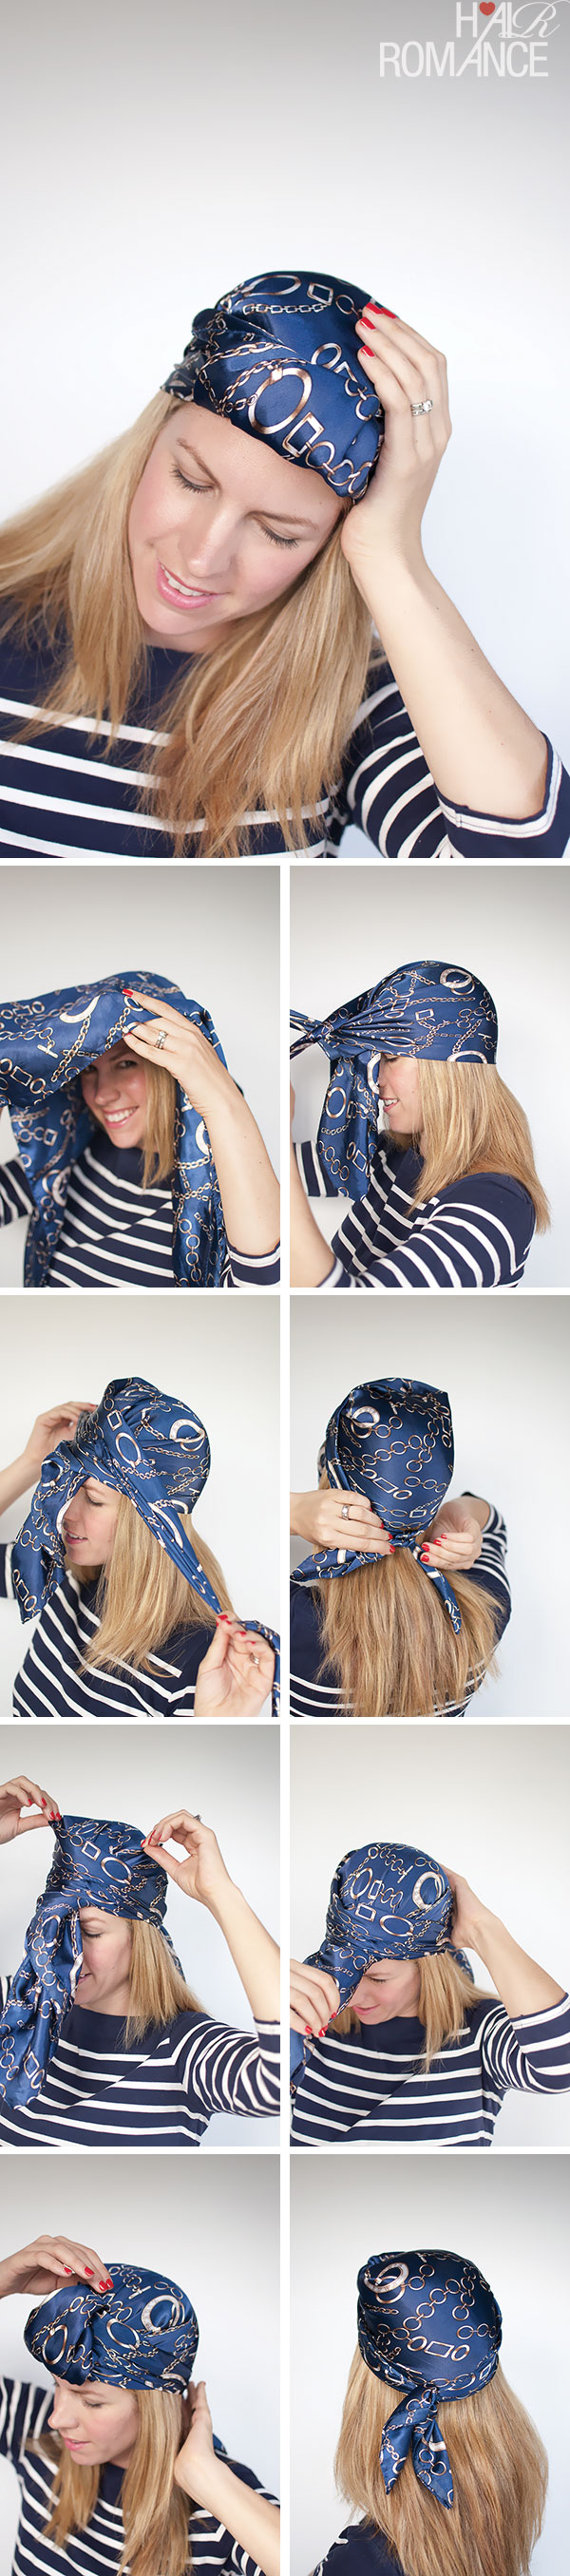 Hair Romance - Headscarf three ways - urban turban